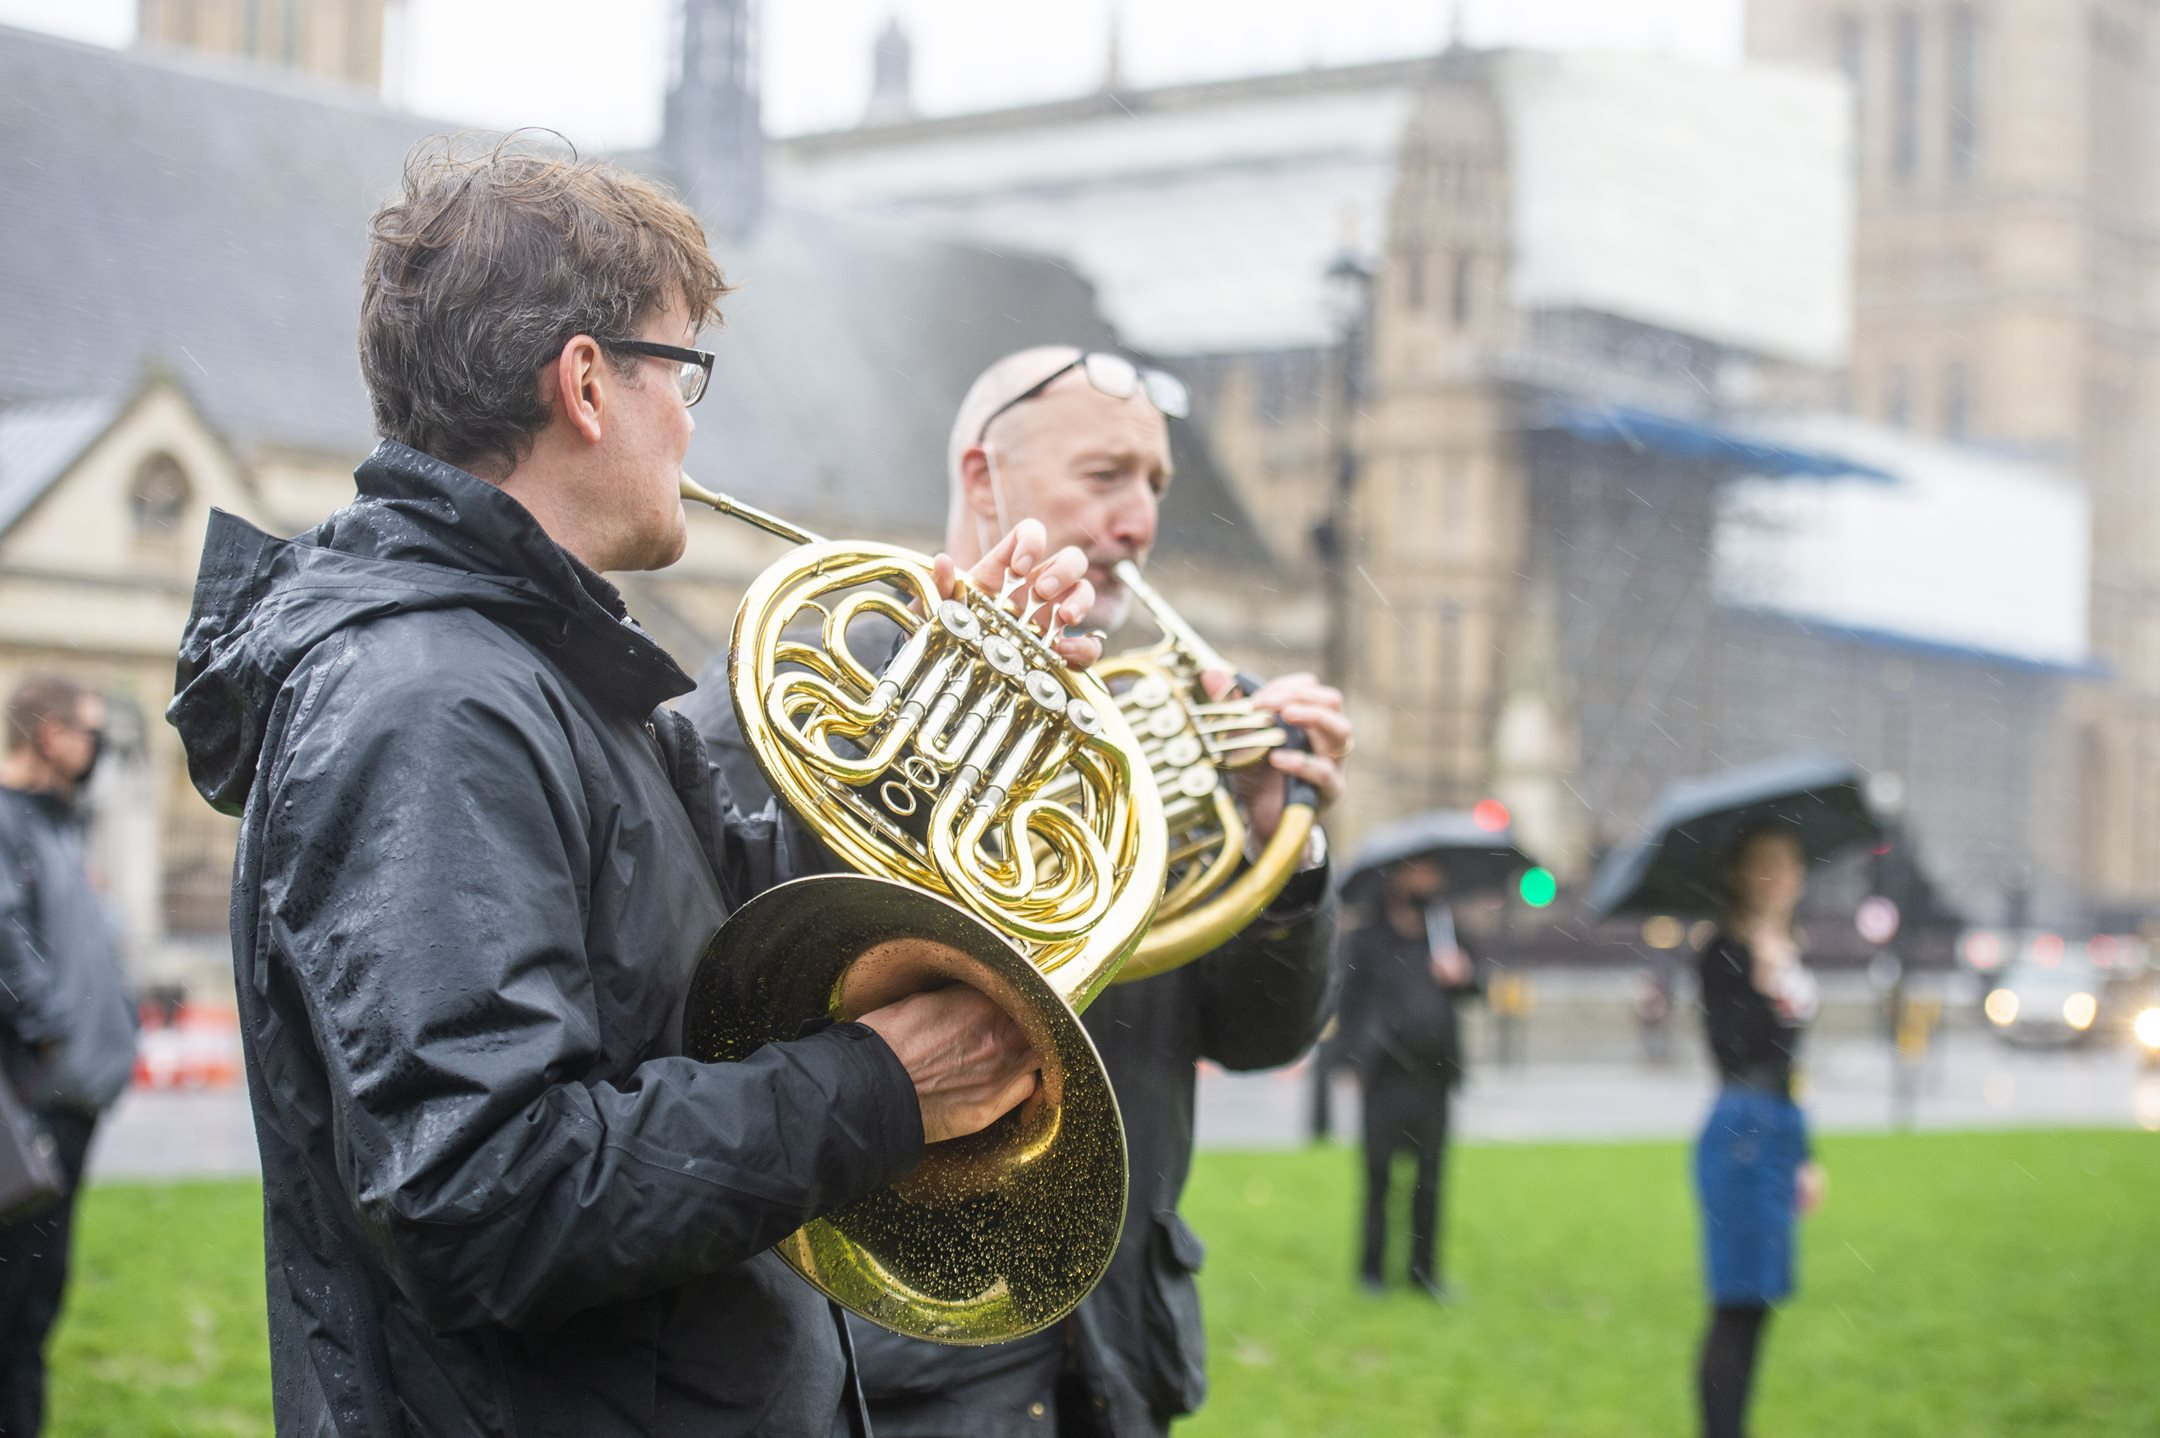 Photograph of a number of musicians playing brass instruments in the rain on Parliament Square.